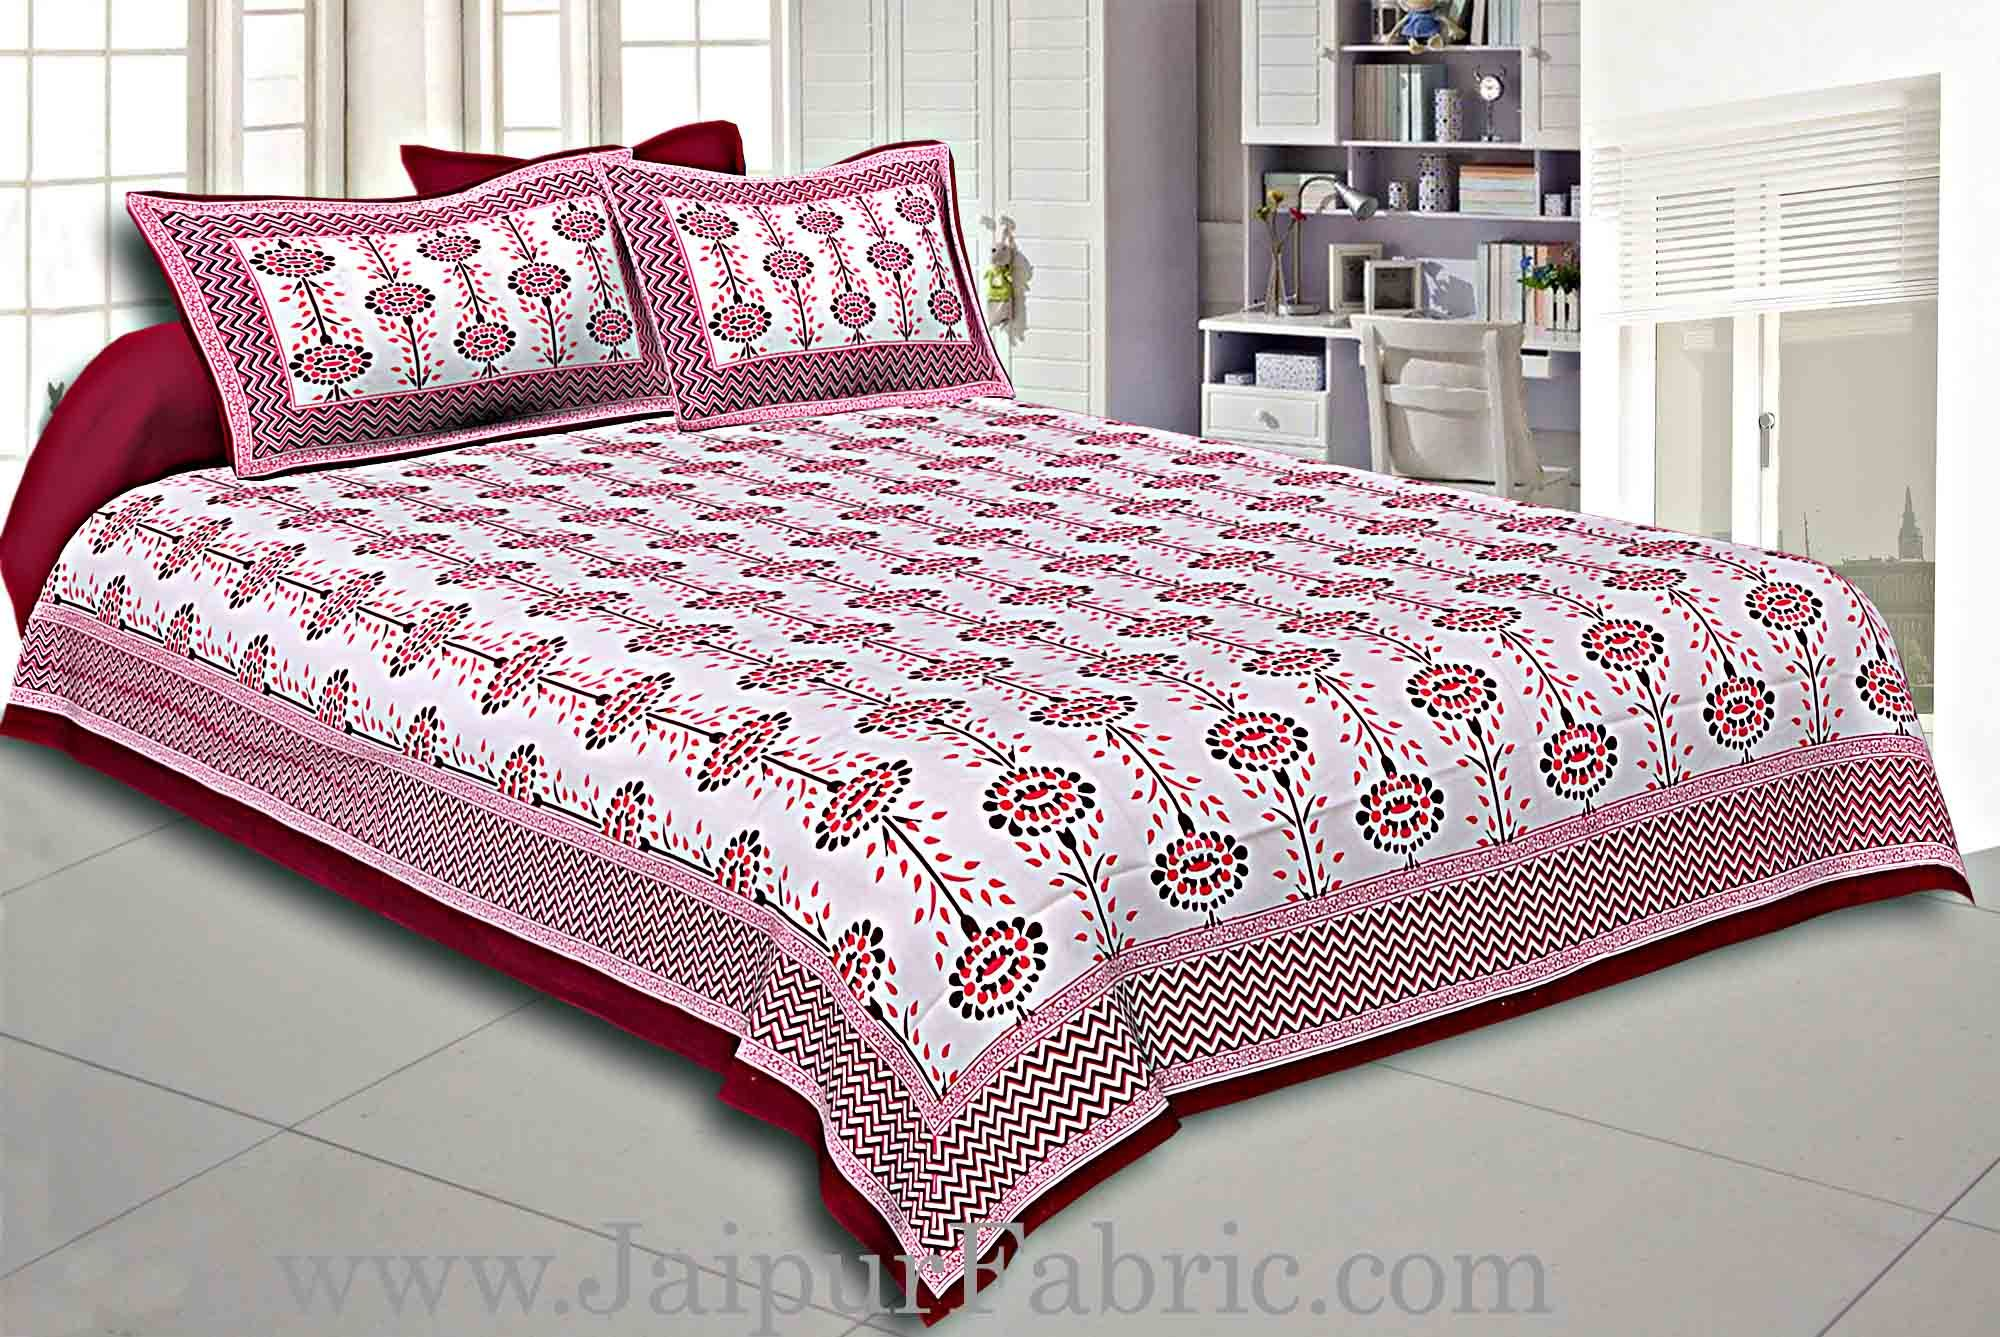 Maroon Border Cream Base Linear Floral Cotton Satin Hand Block Double Bedsheet